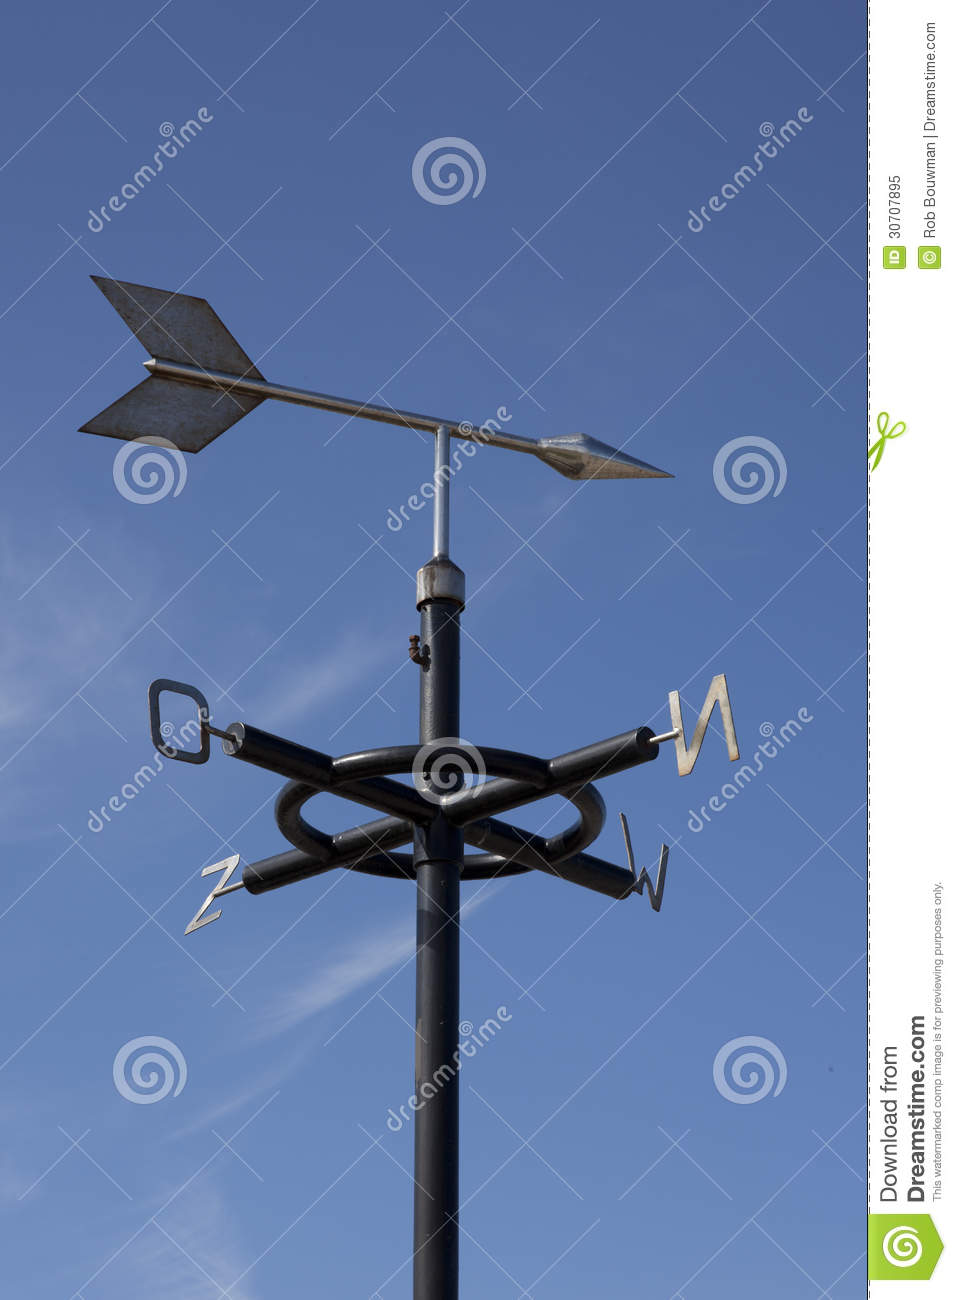 Weather Vane Royalty Free Stock Photo - Image: 30707895